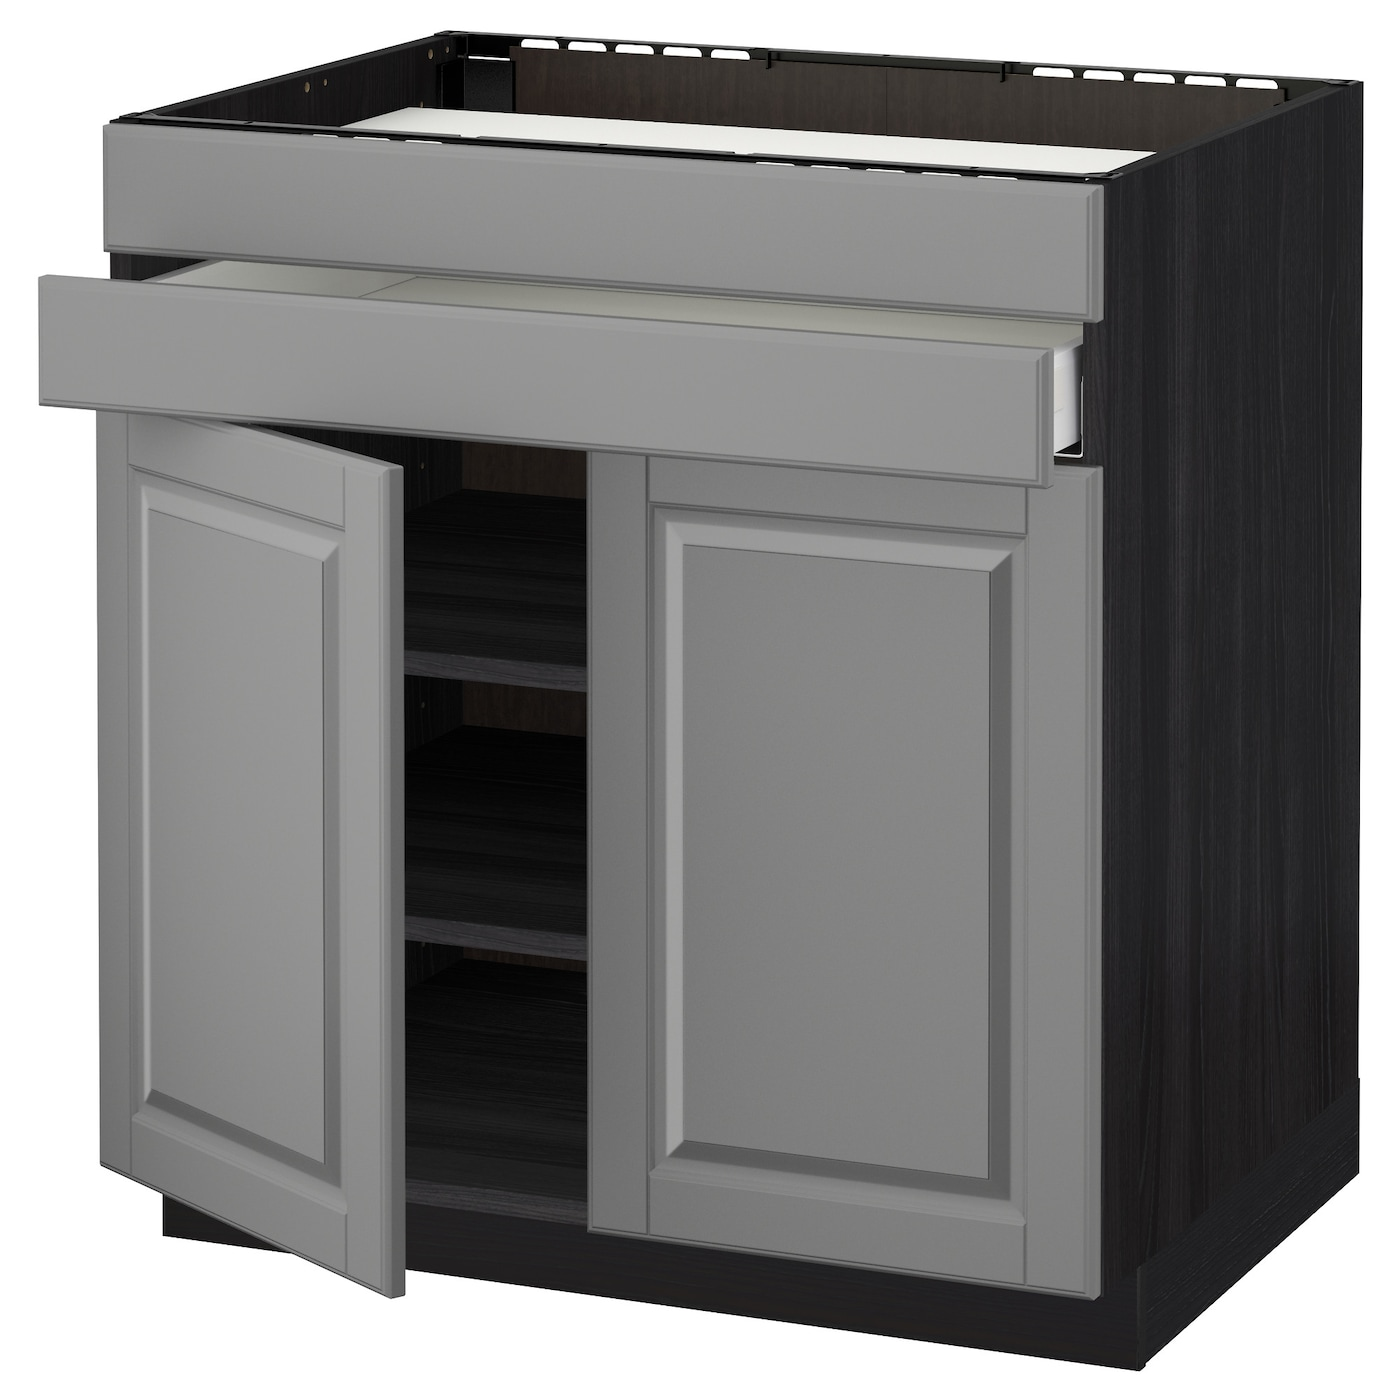 IKEA METOD base cb f hob/2 drs/2 fronts/1 drwr Smooth-running drawer with drawer stop.